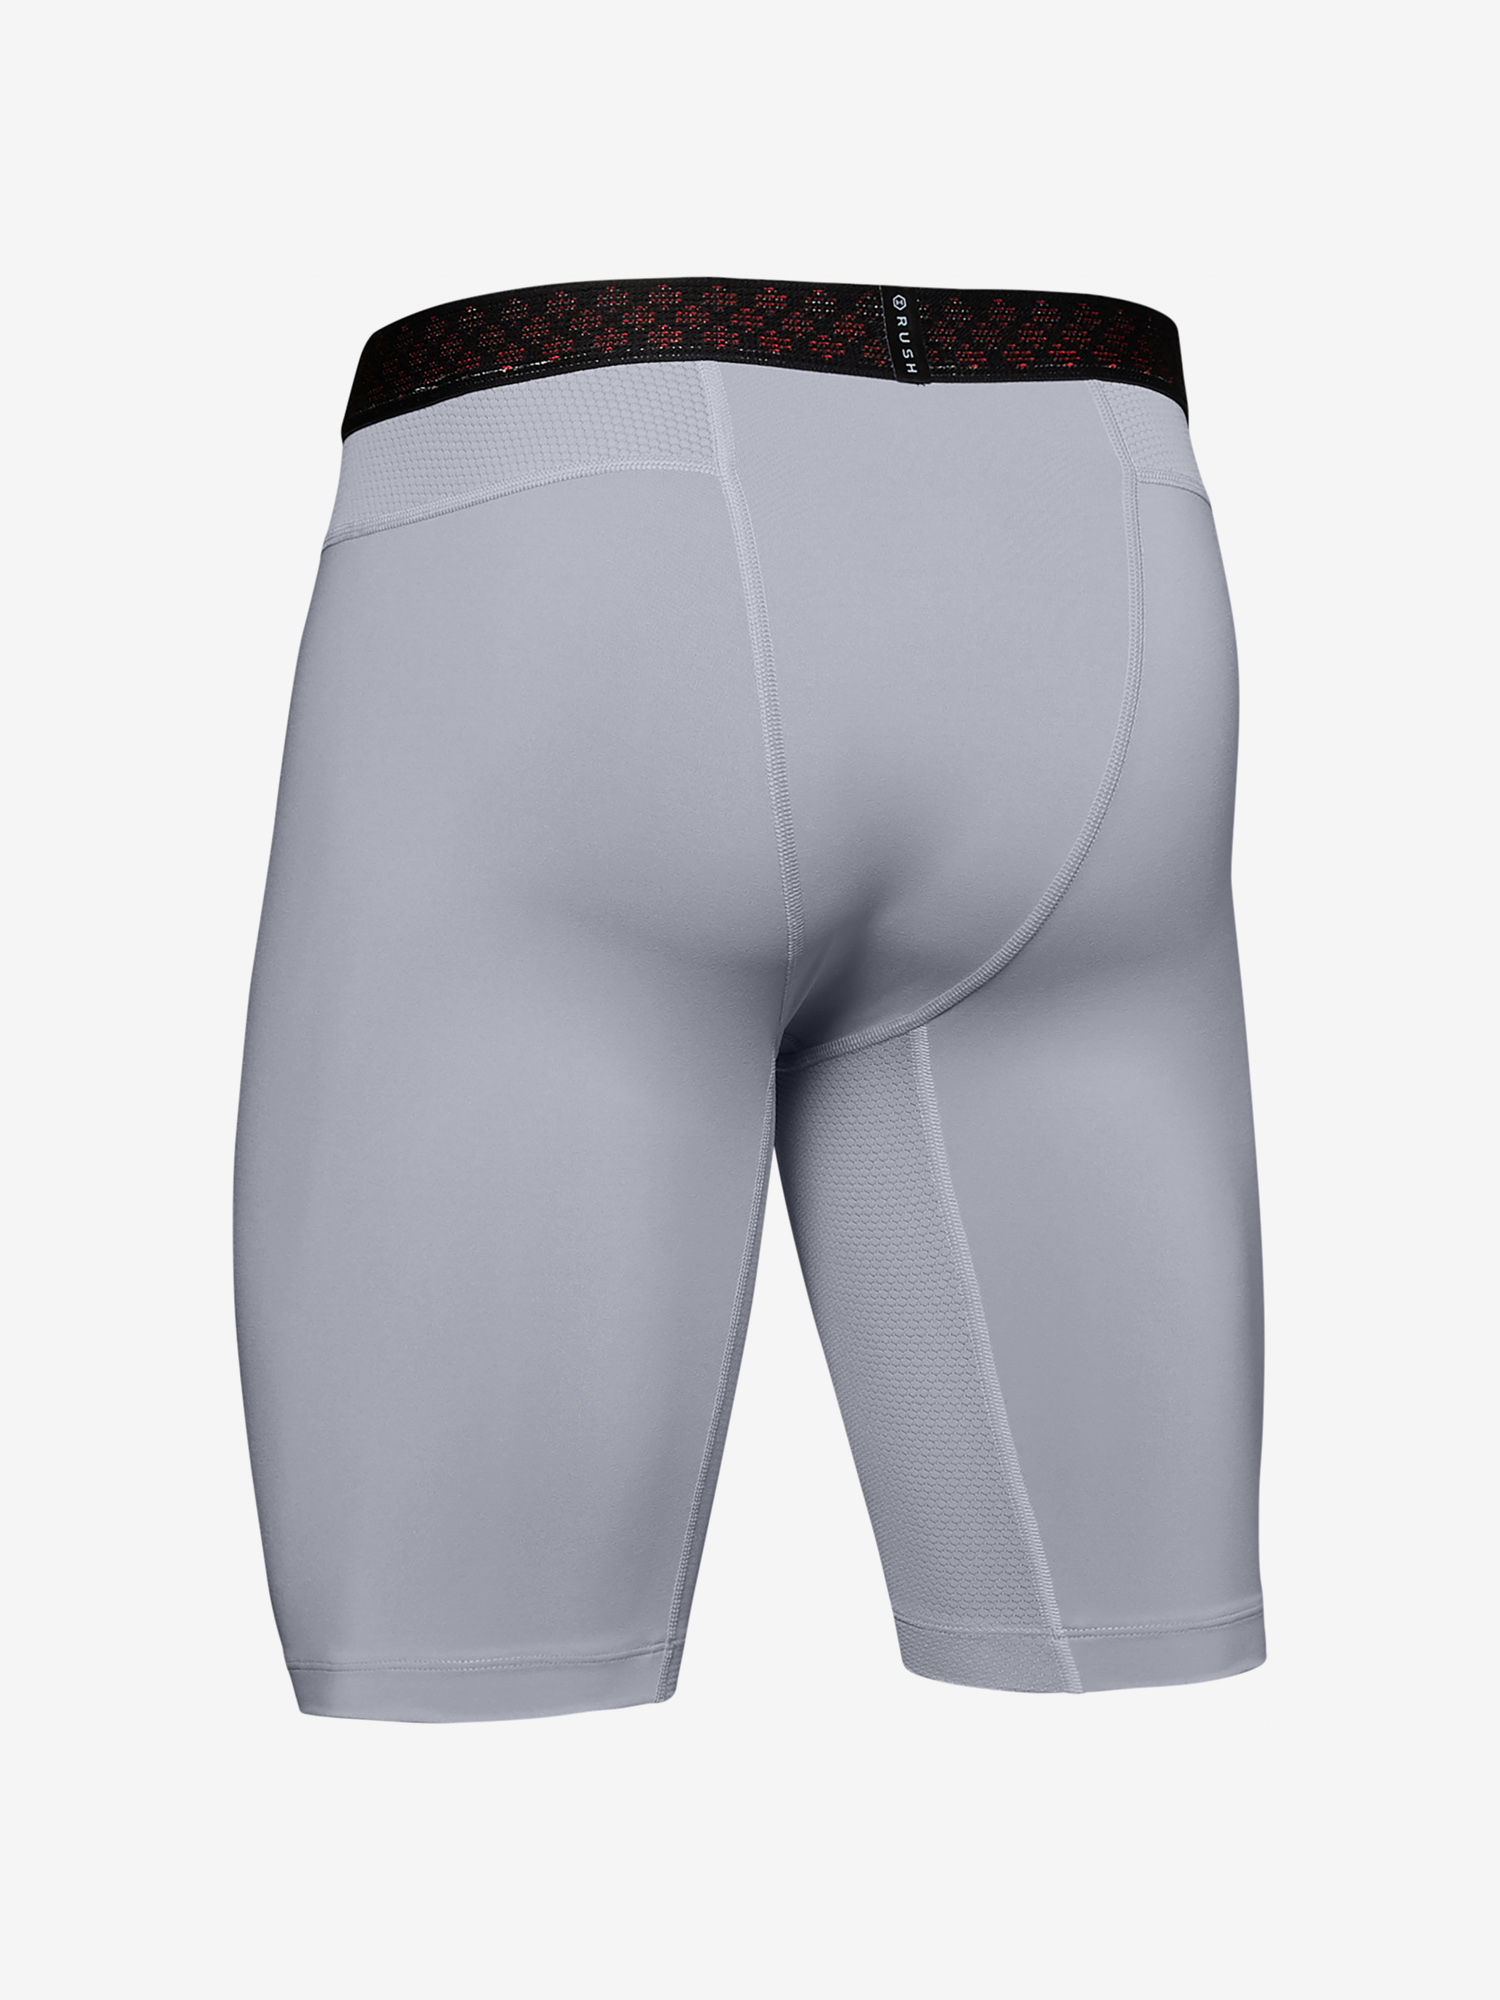 Kompresní šortky Under Armour Rush Comp Short (5)